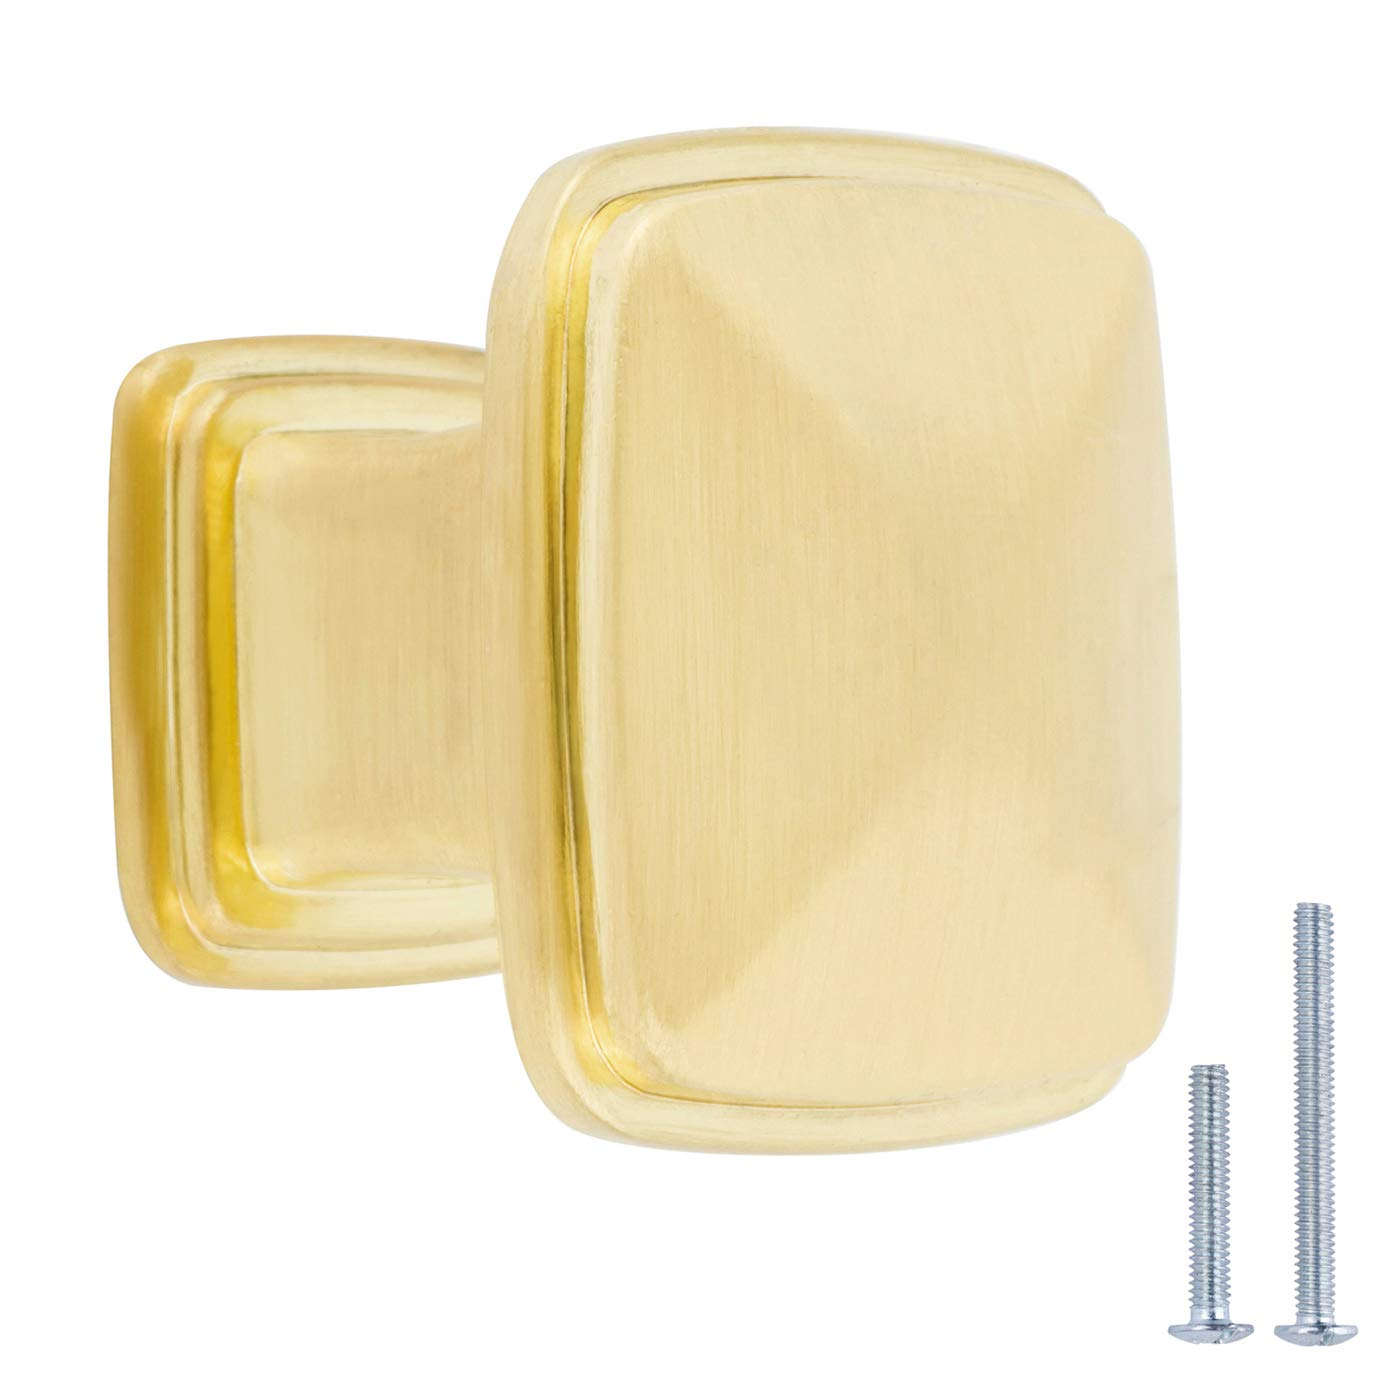 AmazonBasics Traditional Square Cabinet Knob, 1.25-inch Diameter, Brushed Brass, 10-pack